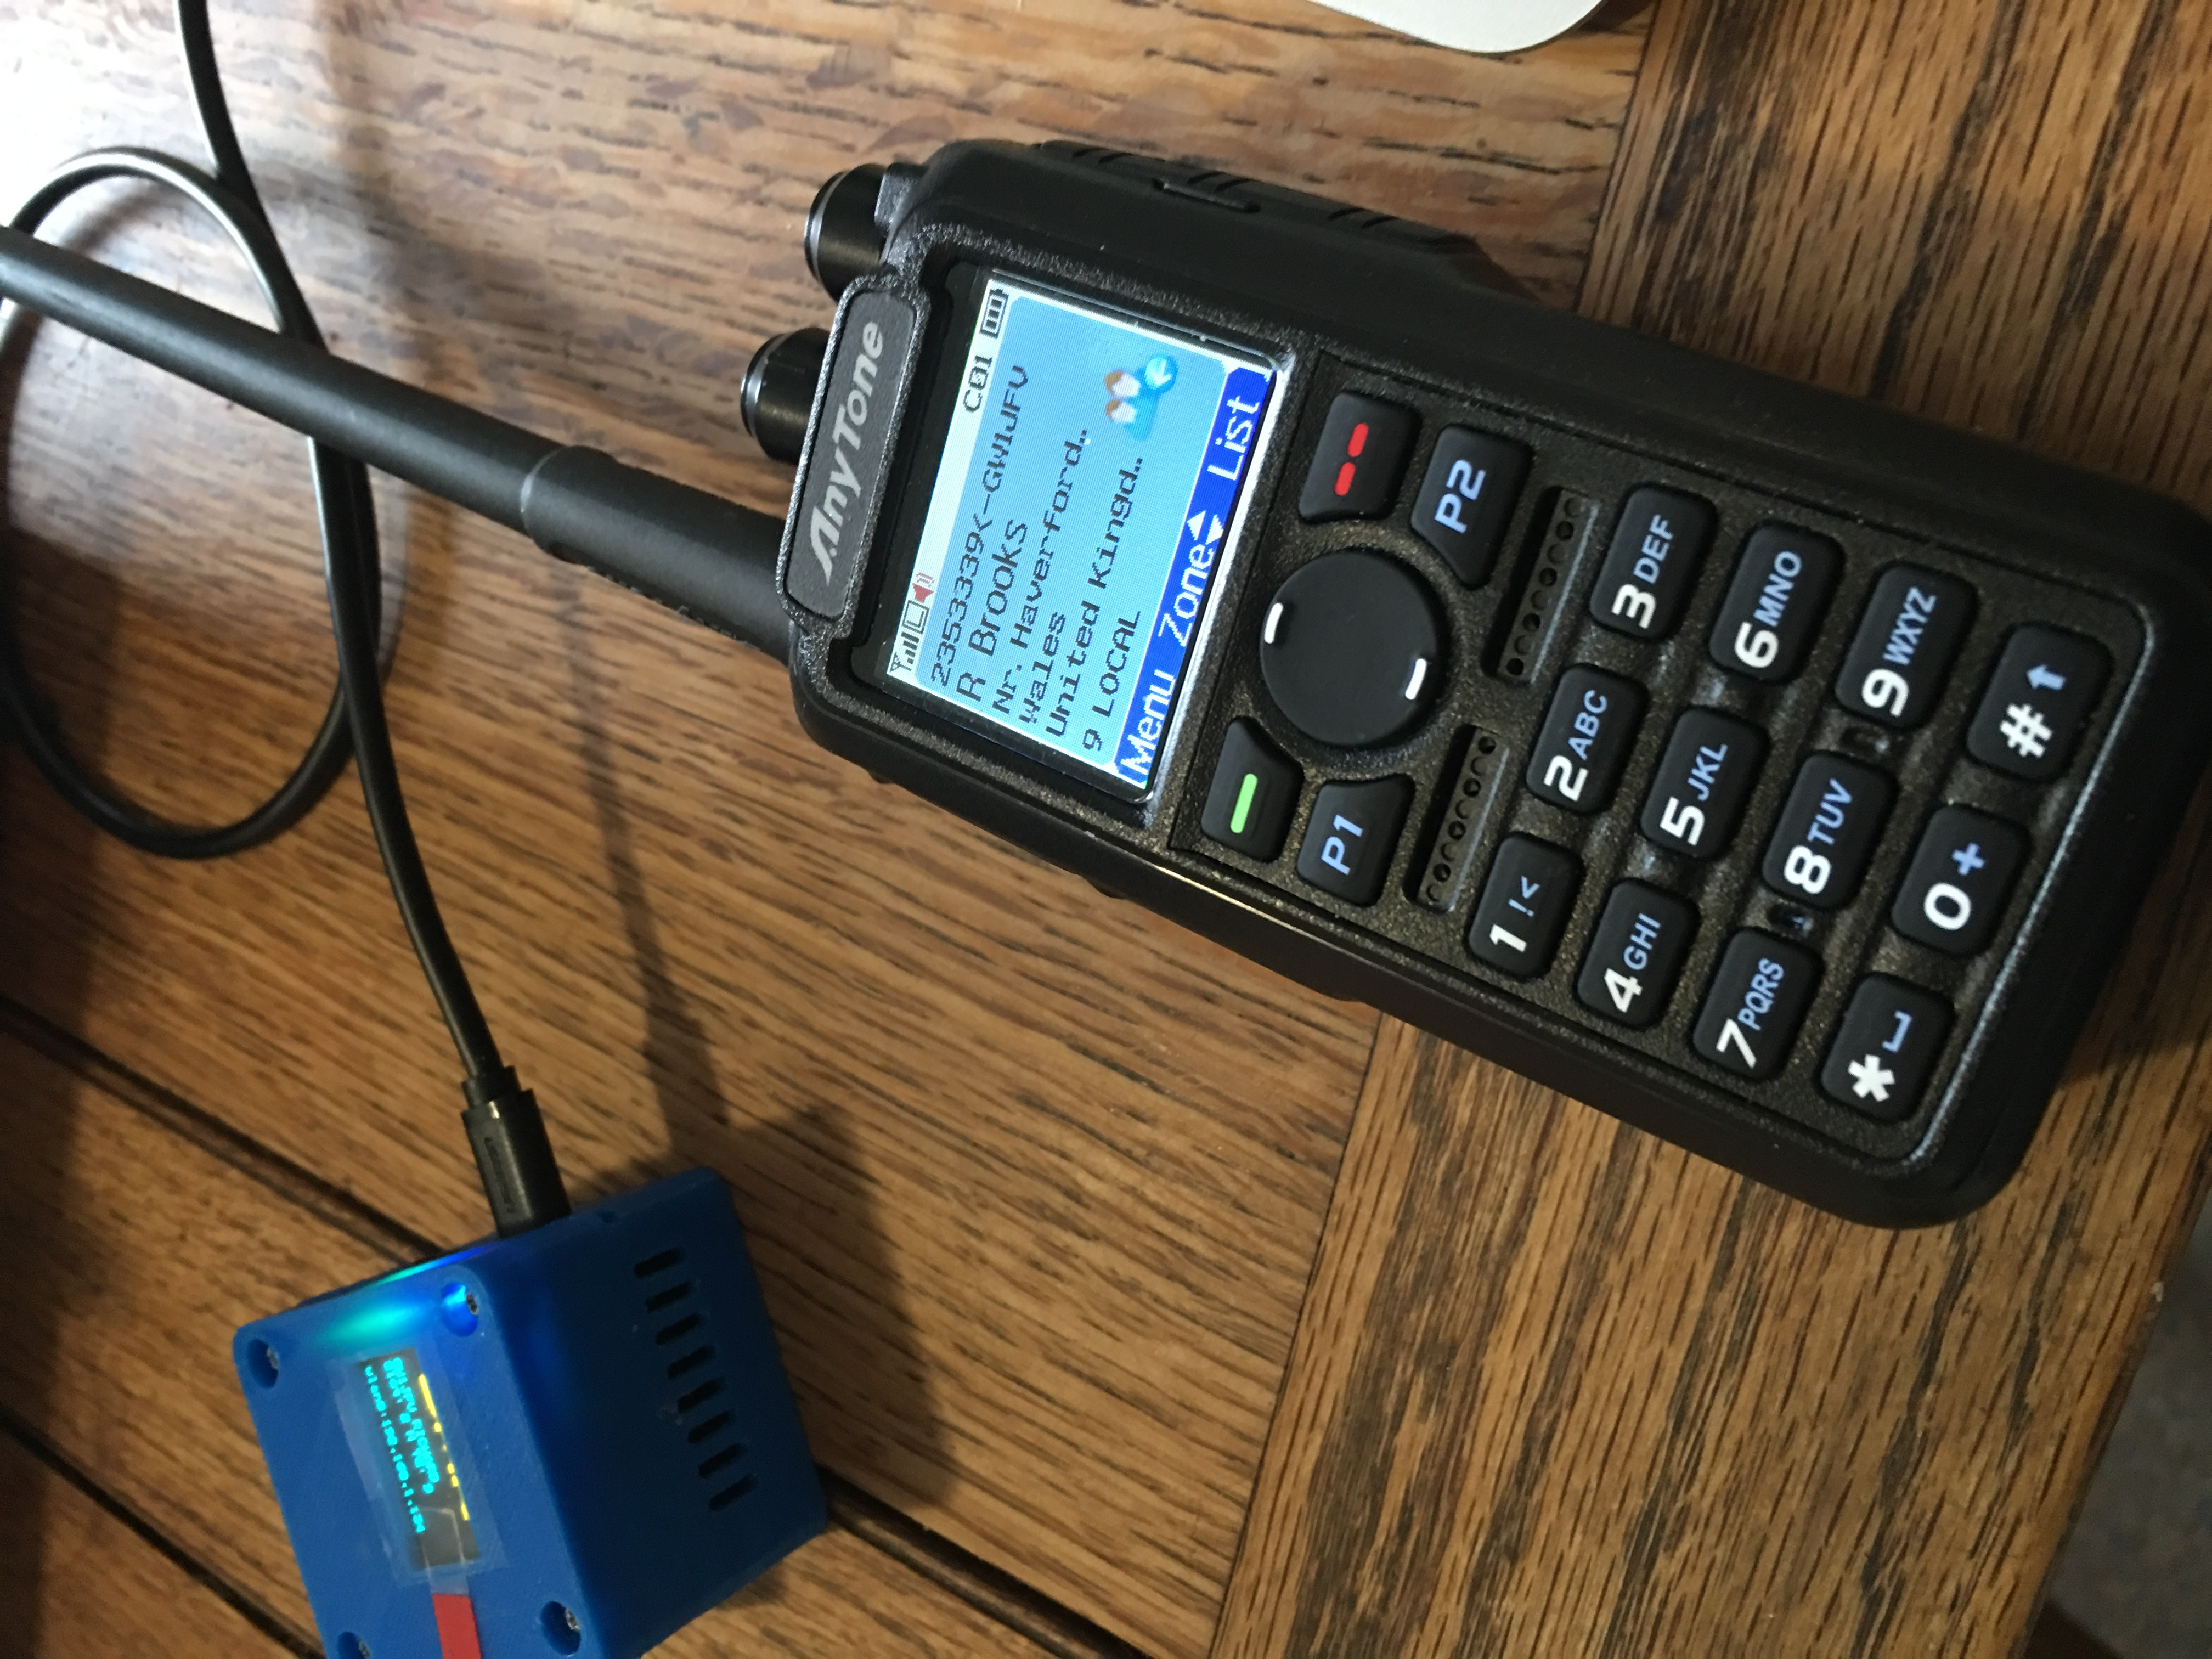 MMDVM Nano hotspot for DMR, D-STAR, C4FM, NXDN and P25